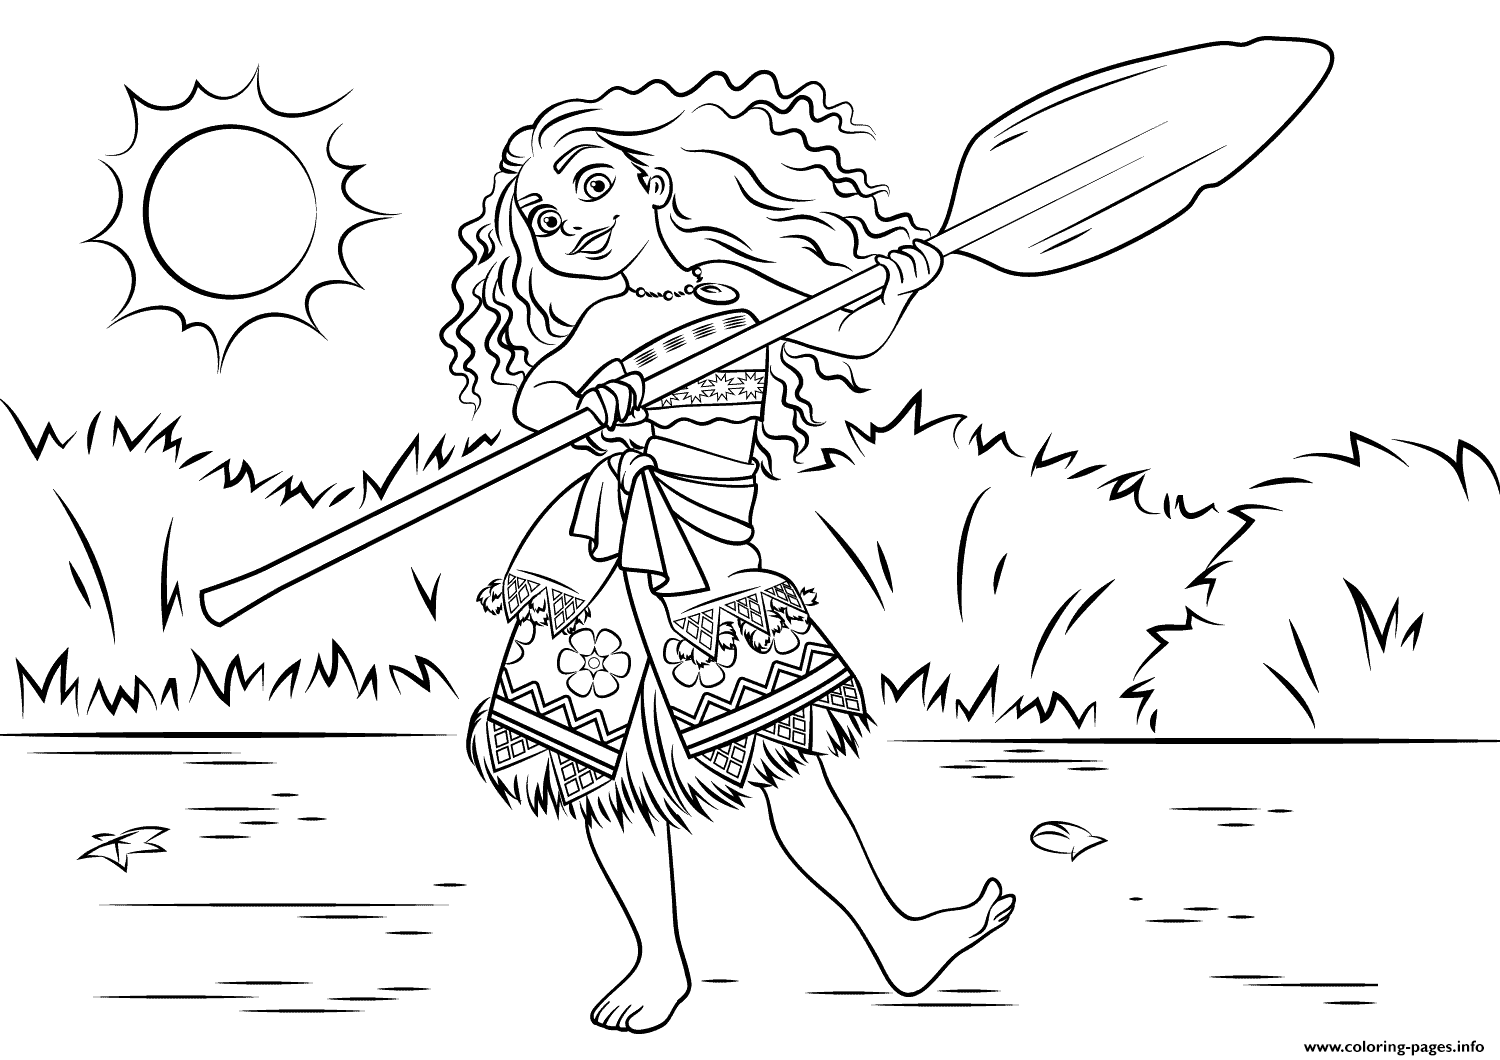 Princess Moana Waialiki Having Fun coloring pages